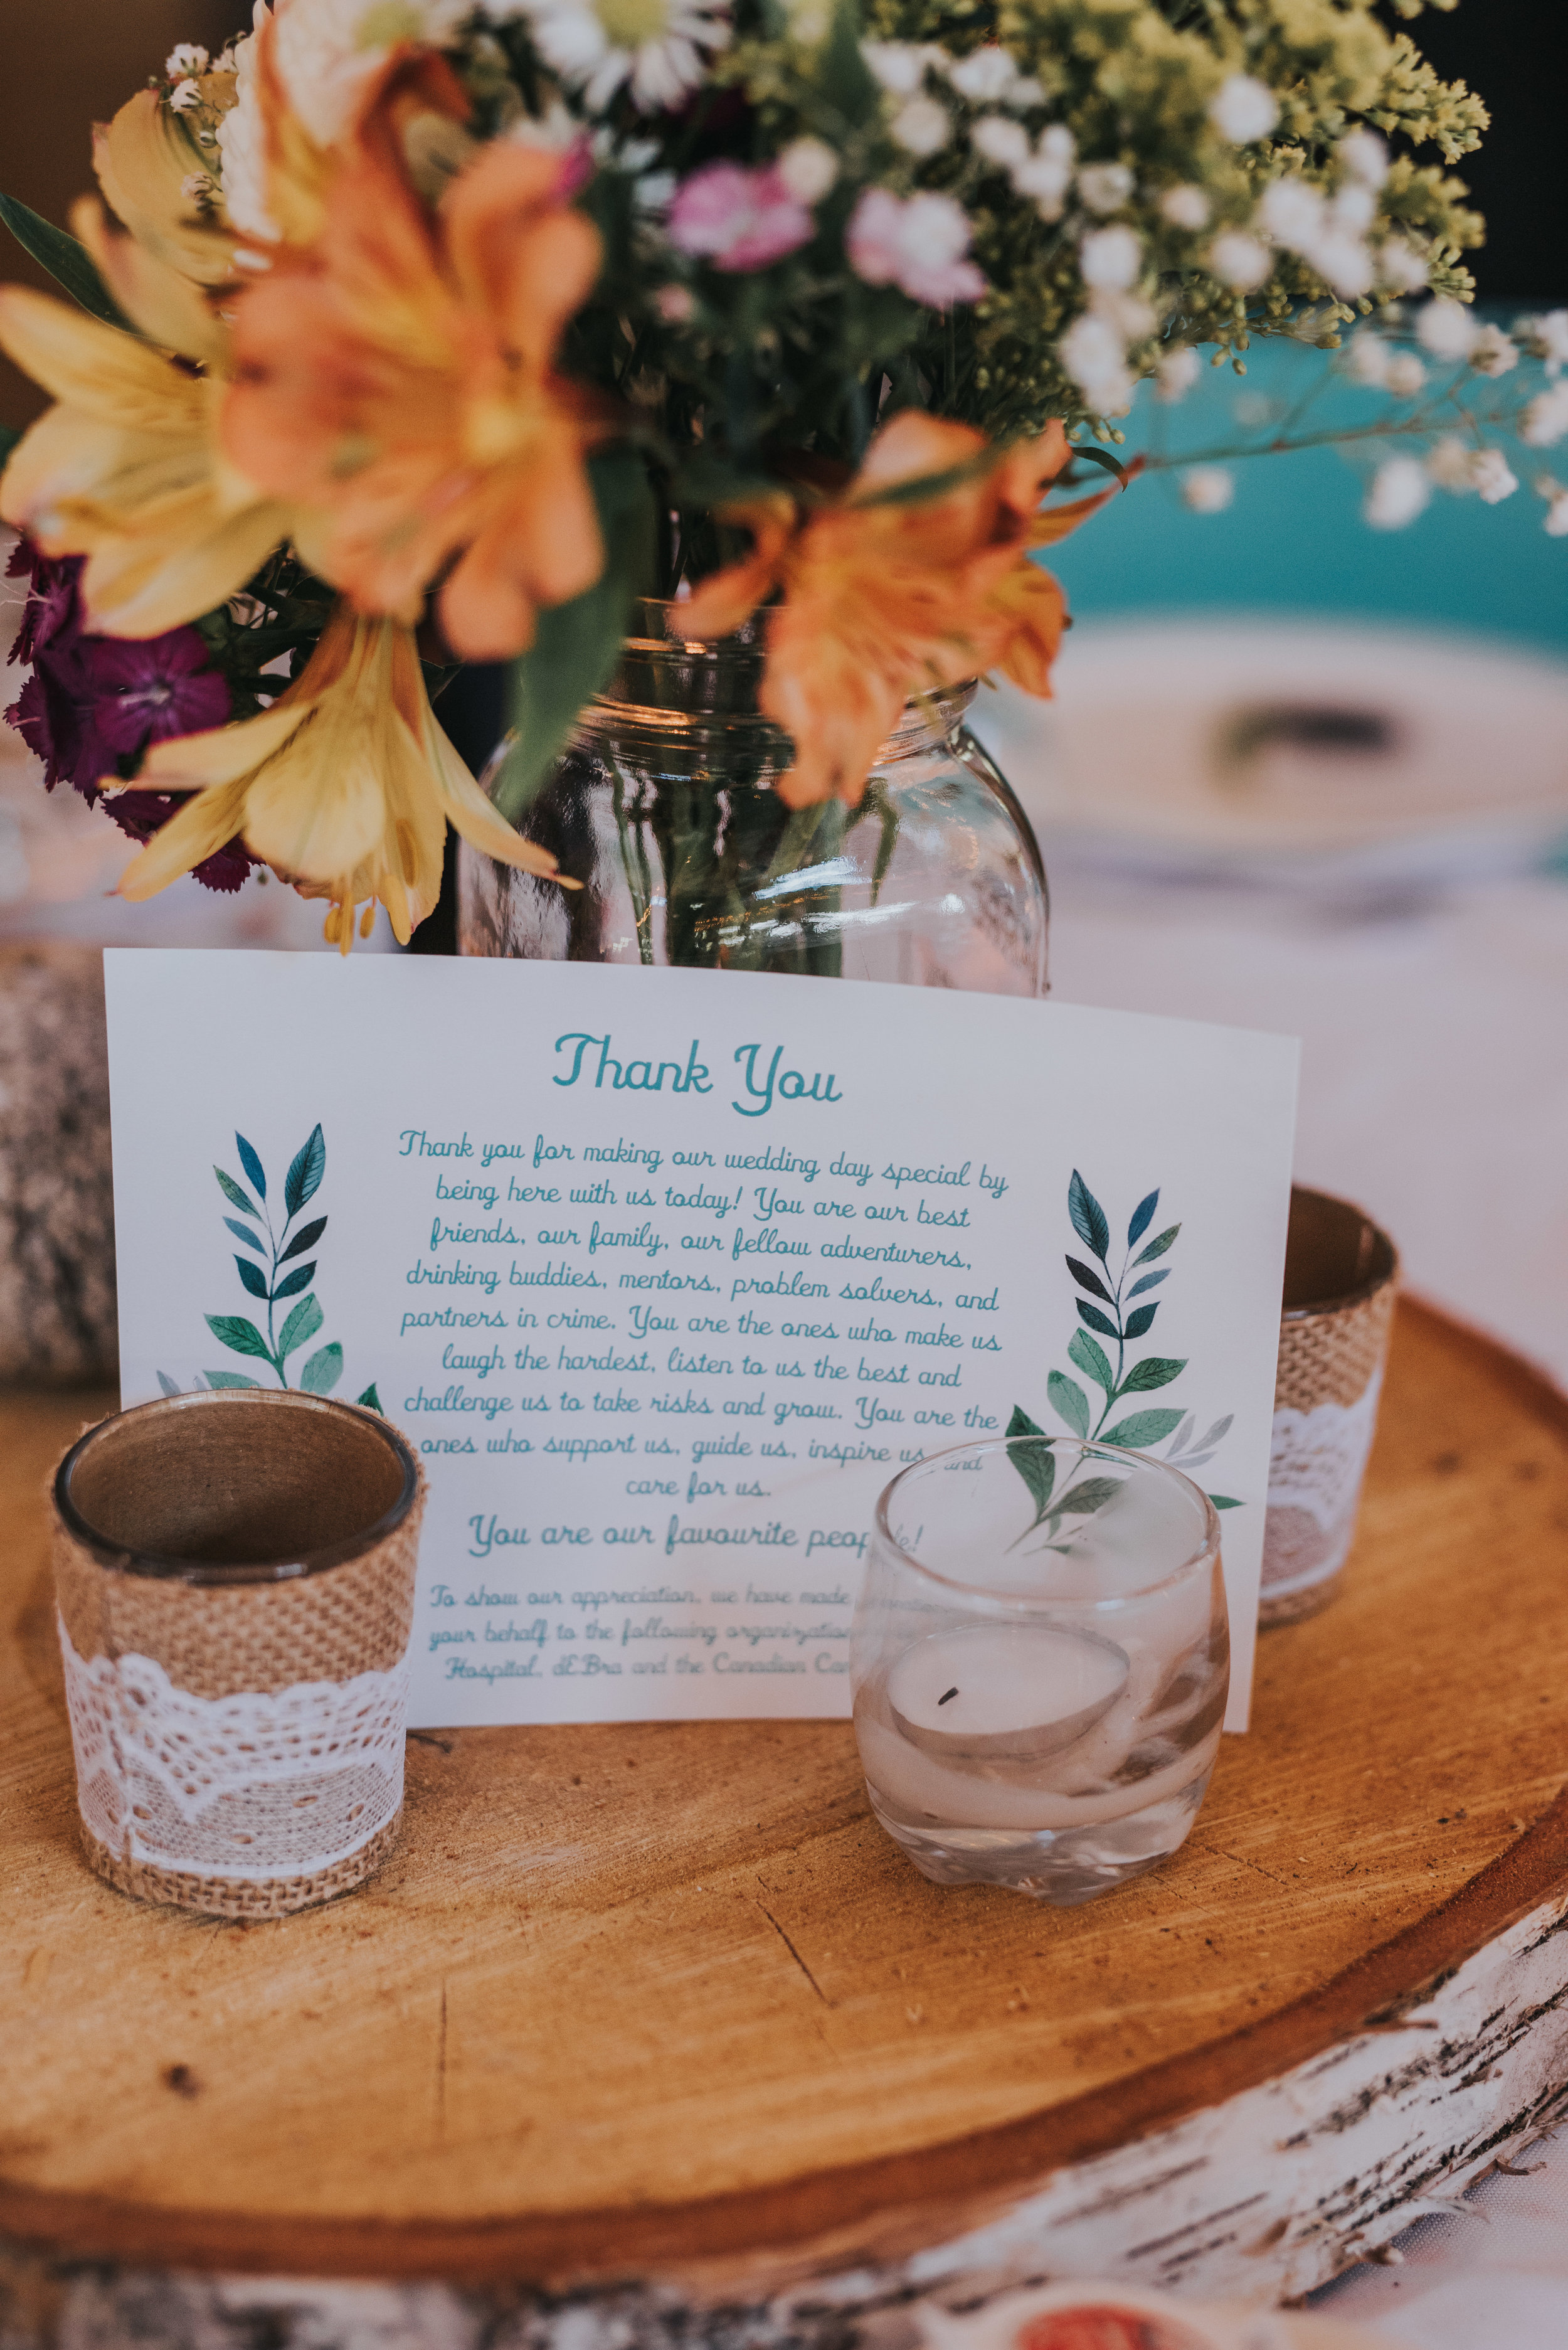 diy-rustic-wedding-reception-decor-toronto-bohemian-boho-outdoor-summer-wedding-documentary-wedding-photography-by-willow-birch-photo.jpg